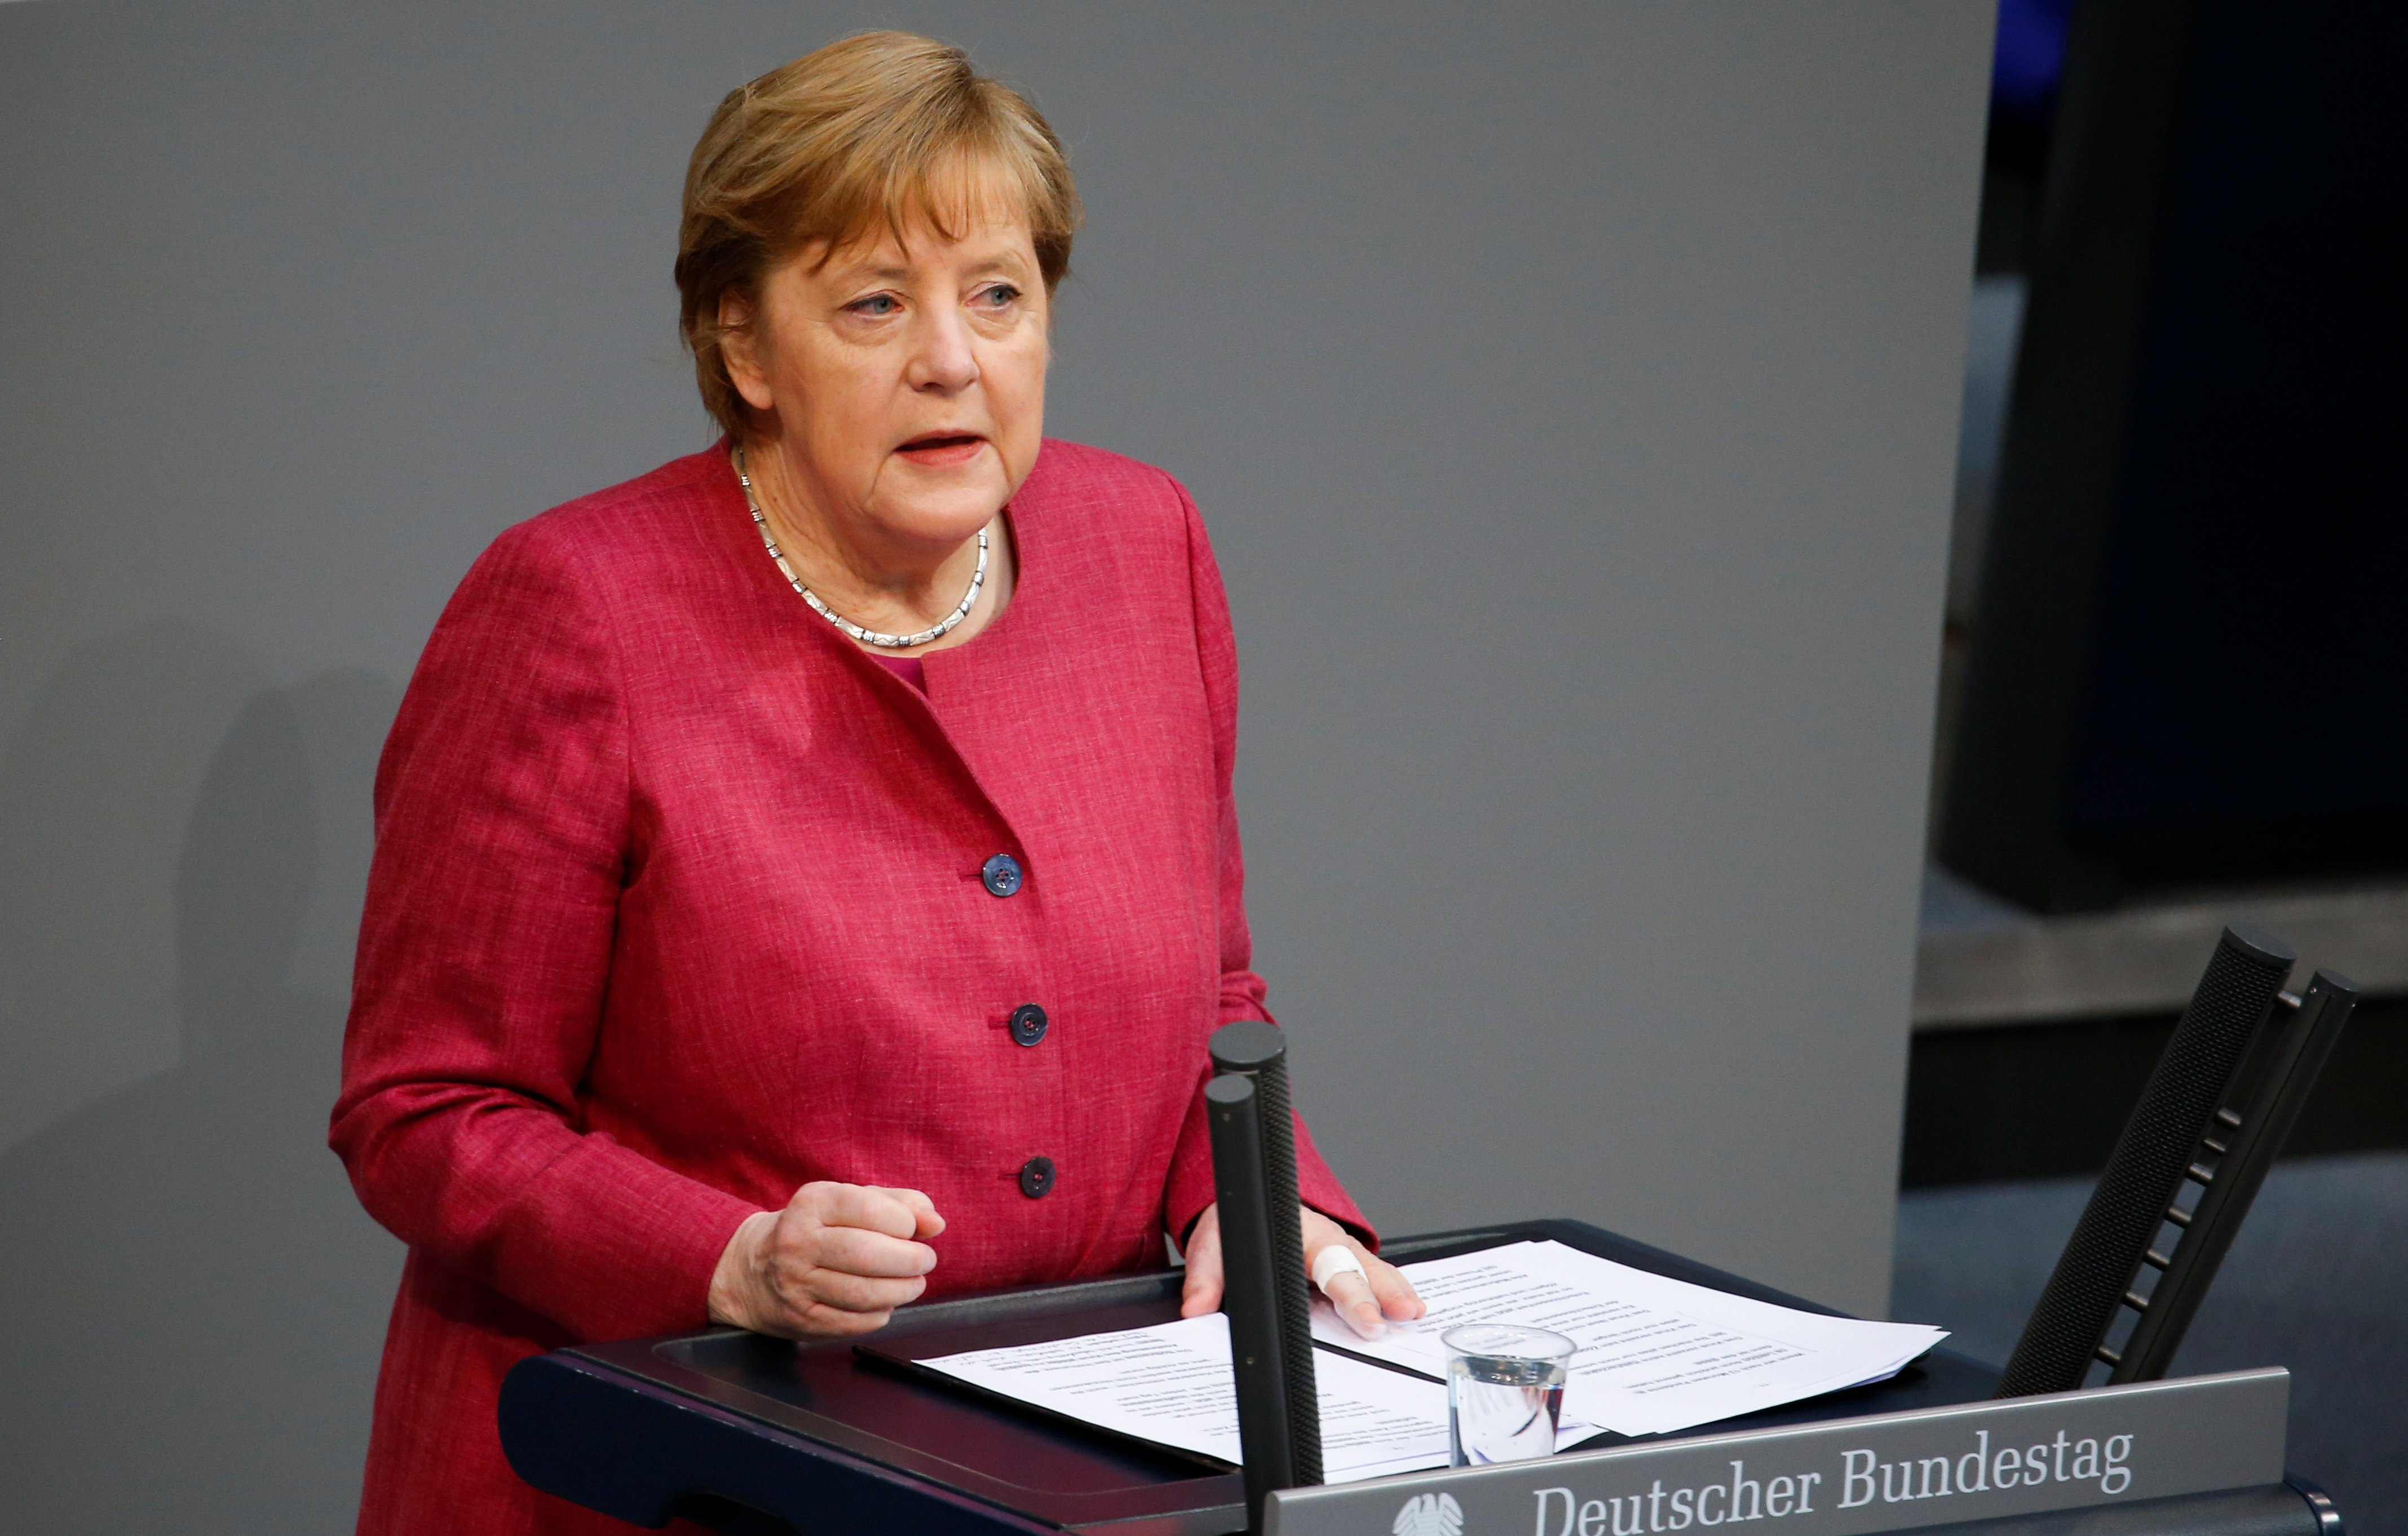 German Chancellor Angela Merkel speaks during a session of the lower house of parliament Bundestag debating the coronavirus disease (COVID-19) measures, in Berlin, Germany, April 16, 2021. REUTERS/Michele Tantussi